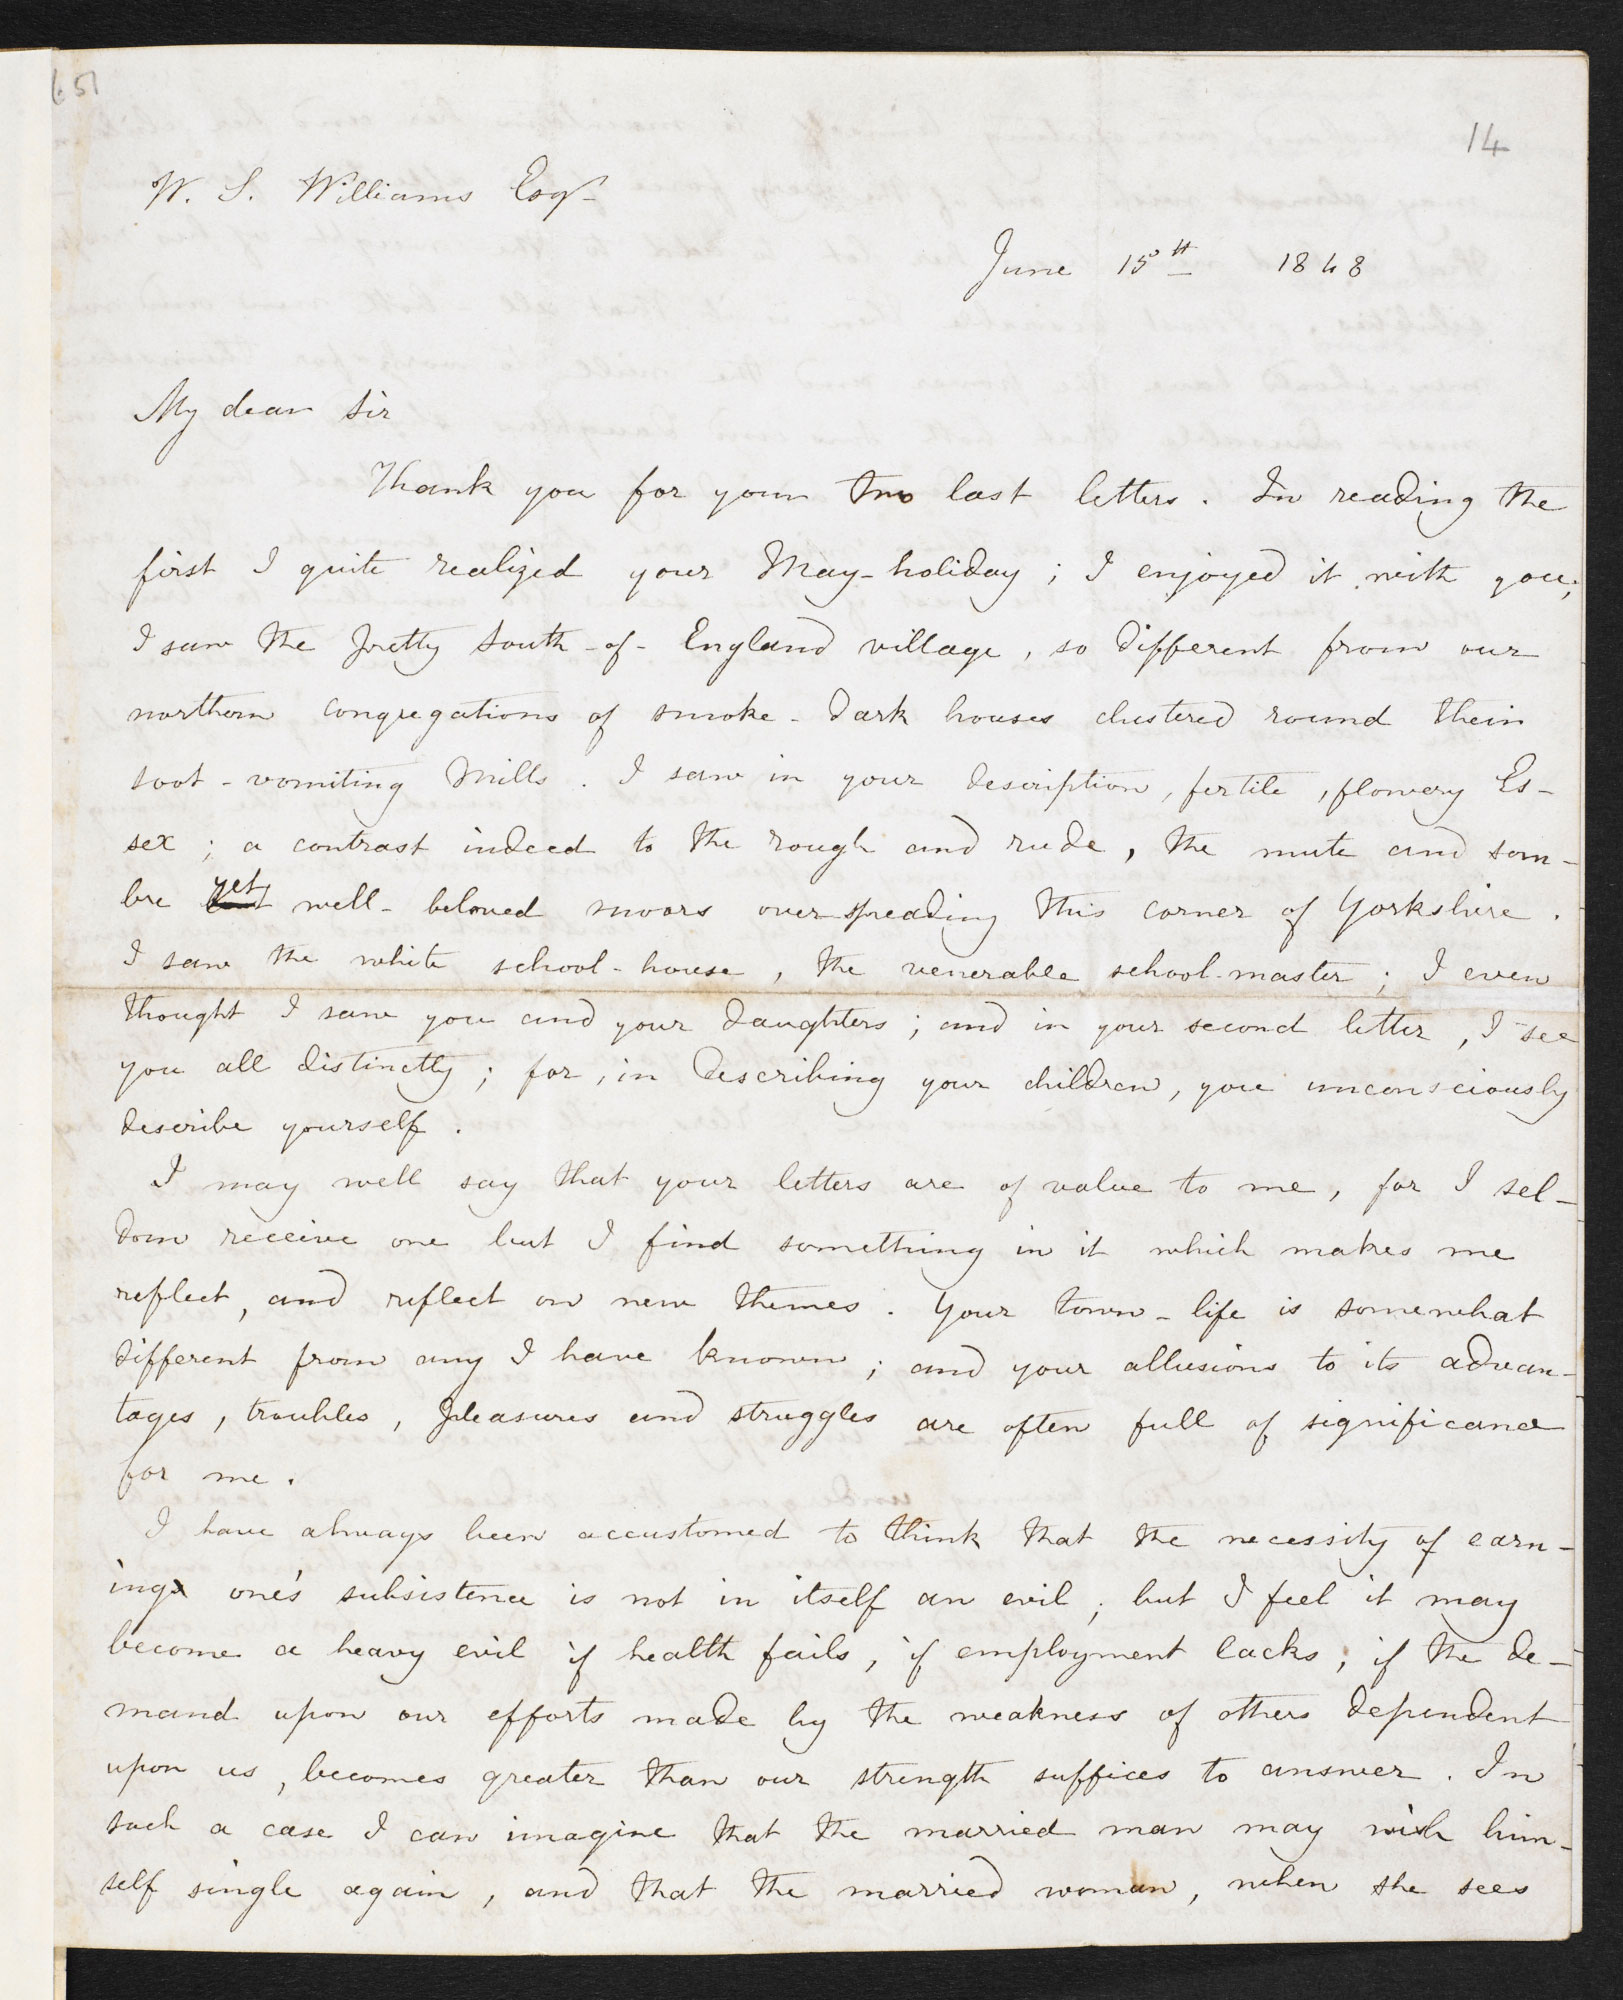 Letter from Charlotte Brontë to W S Williams, with remarks on the life of a governess, 15 June 1848